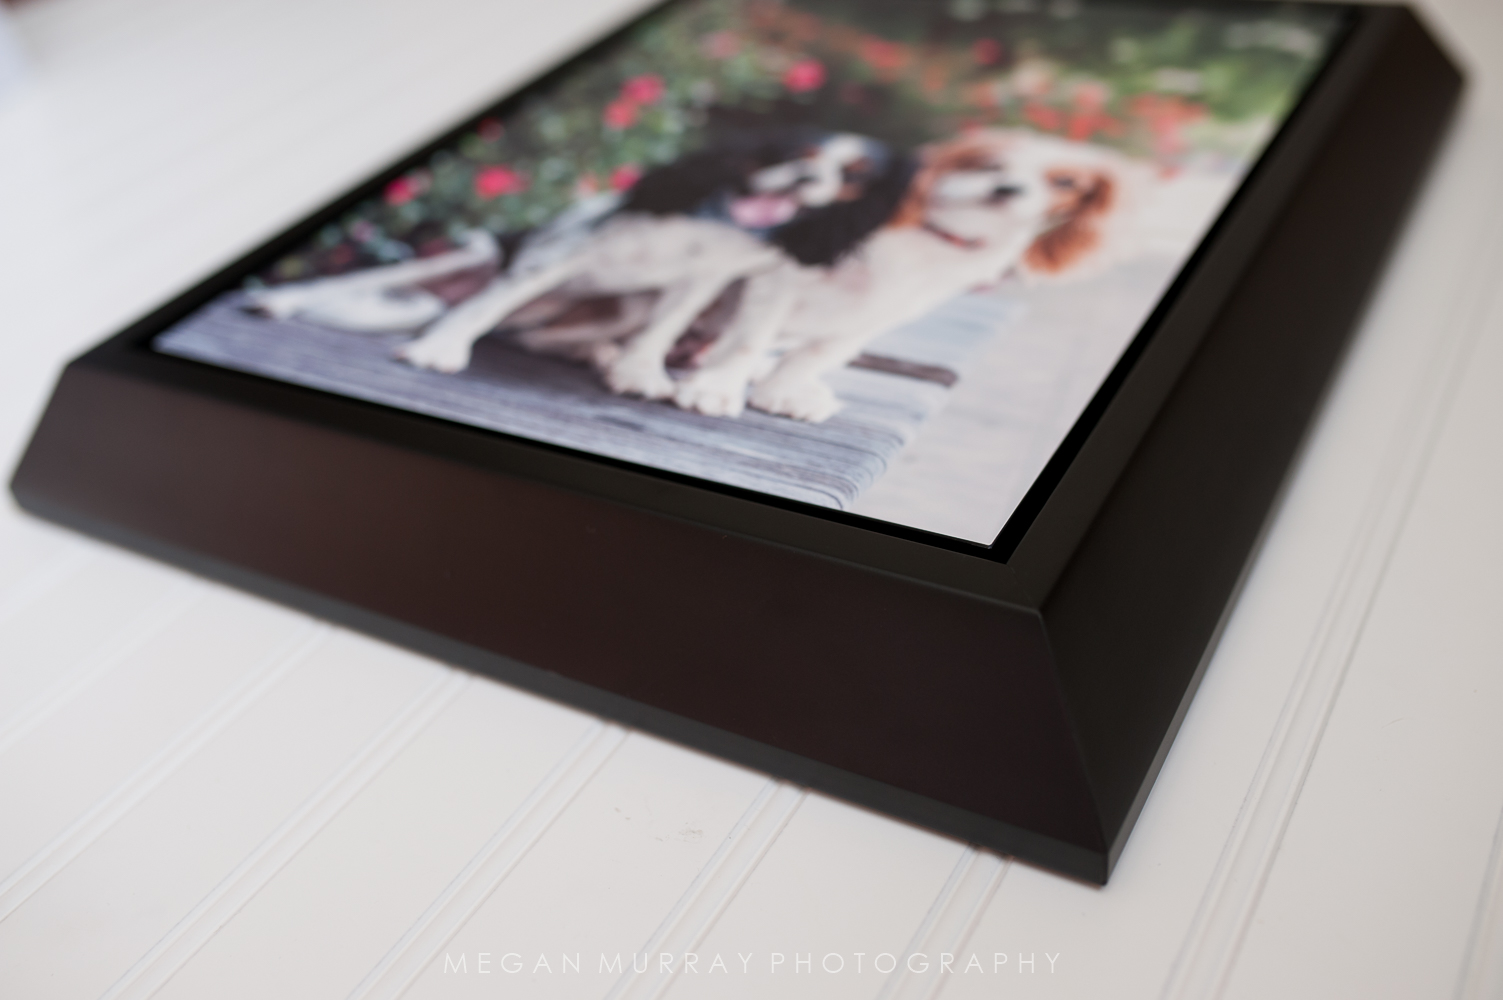 Pet Photo Albums and Wall Art-23.jpg